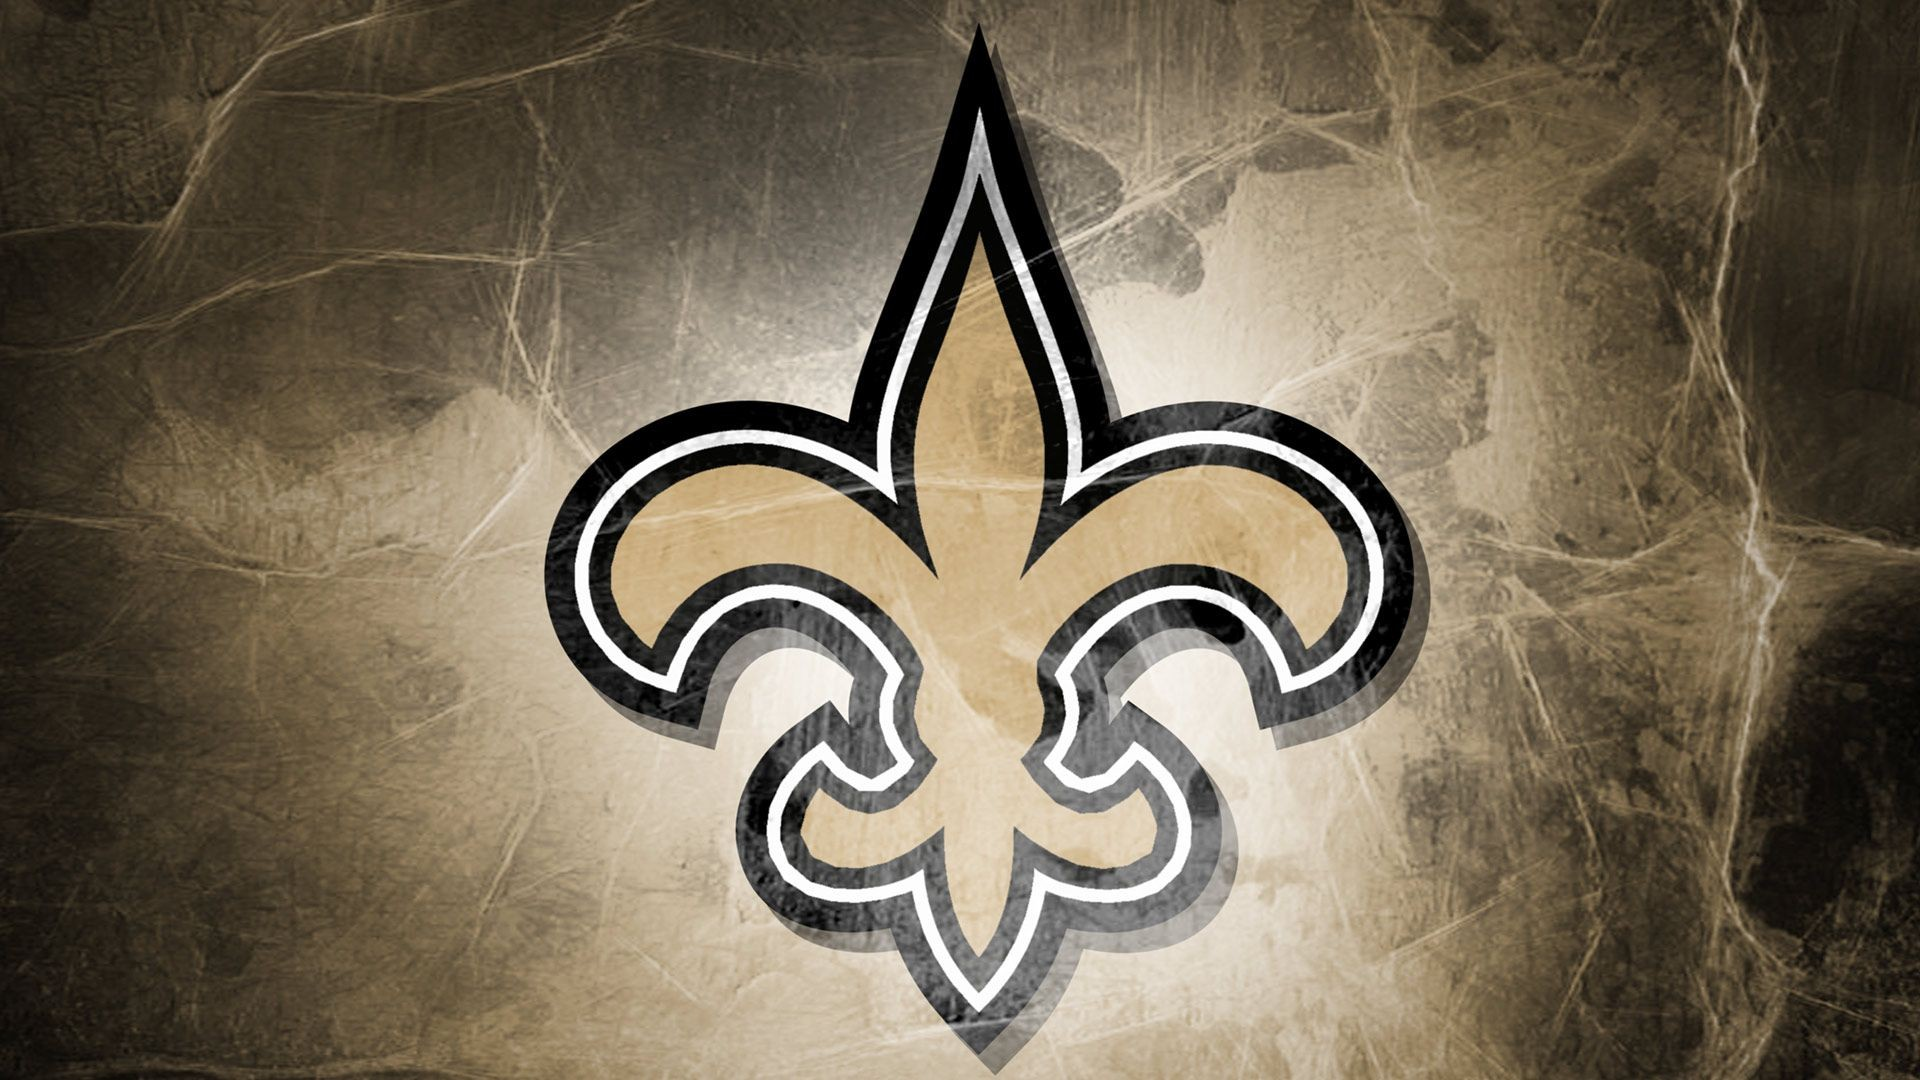 Saints Wallpaper – An Ideal Wallpaper for Your Cell Phone Or Tablet